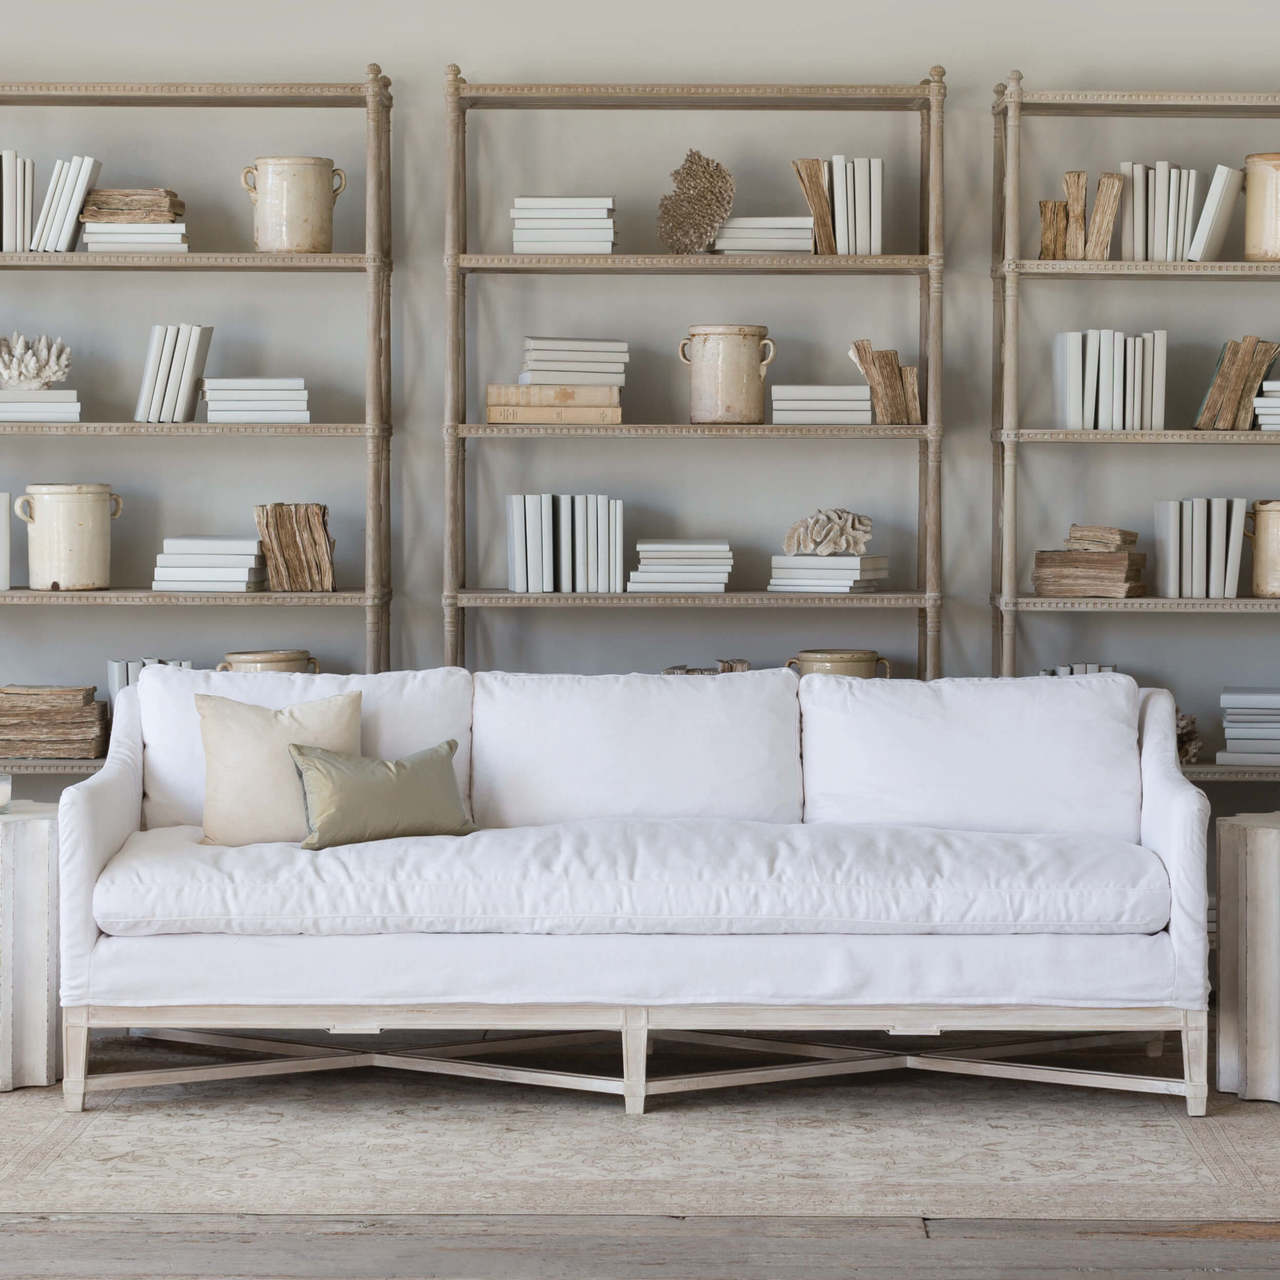 Astounding Eloquence Scandinavian Sofa In Whispy White Linen Slip Cover And Worn Oak Finish Machost Co Dining Chair Design Ideas Machostcouk